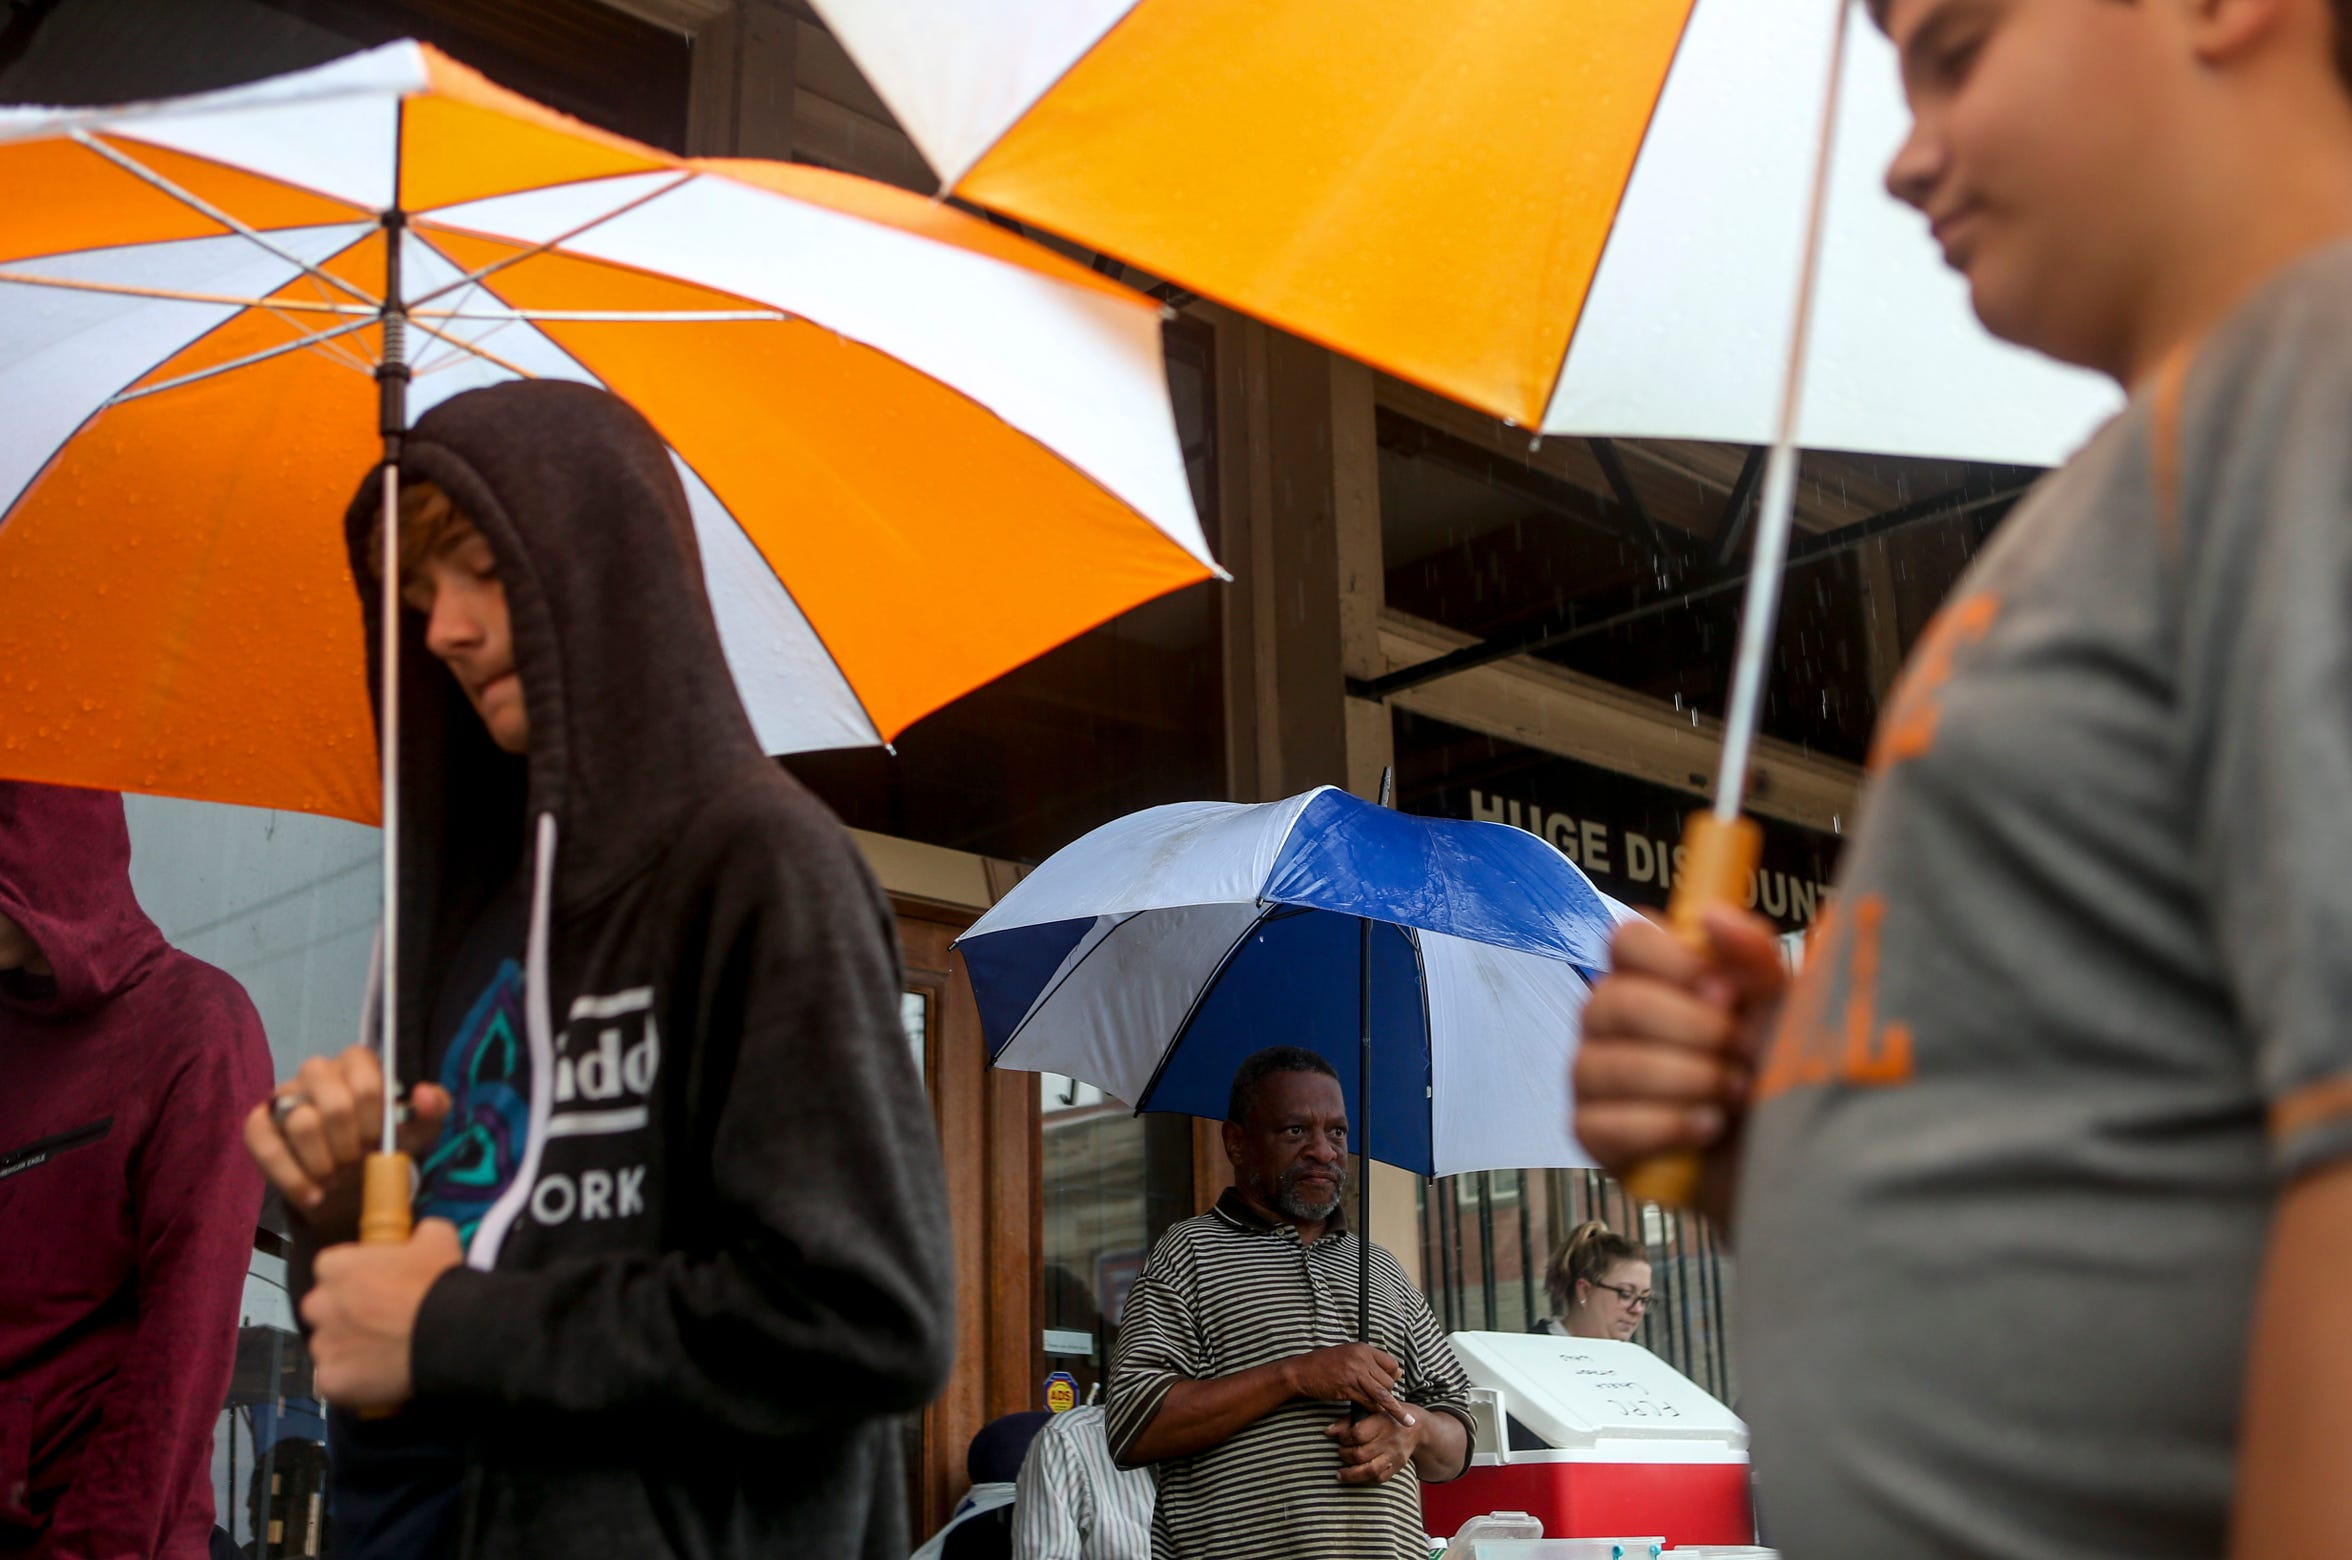 Attendees and volunteers at the Church Without Walls stand in the rain during service at the intersection of Church and College in Jackson, Tenn., on Sunday, Sept. 9, 2018.